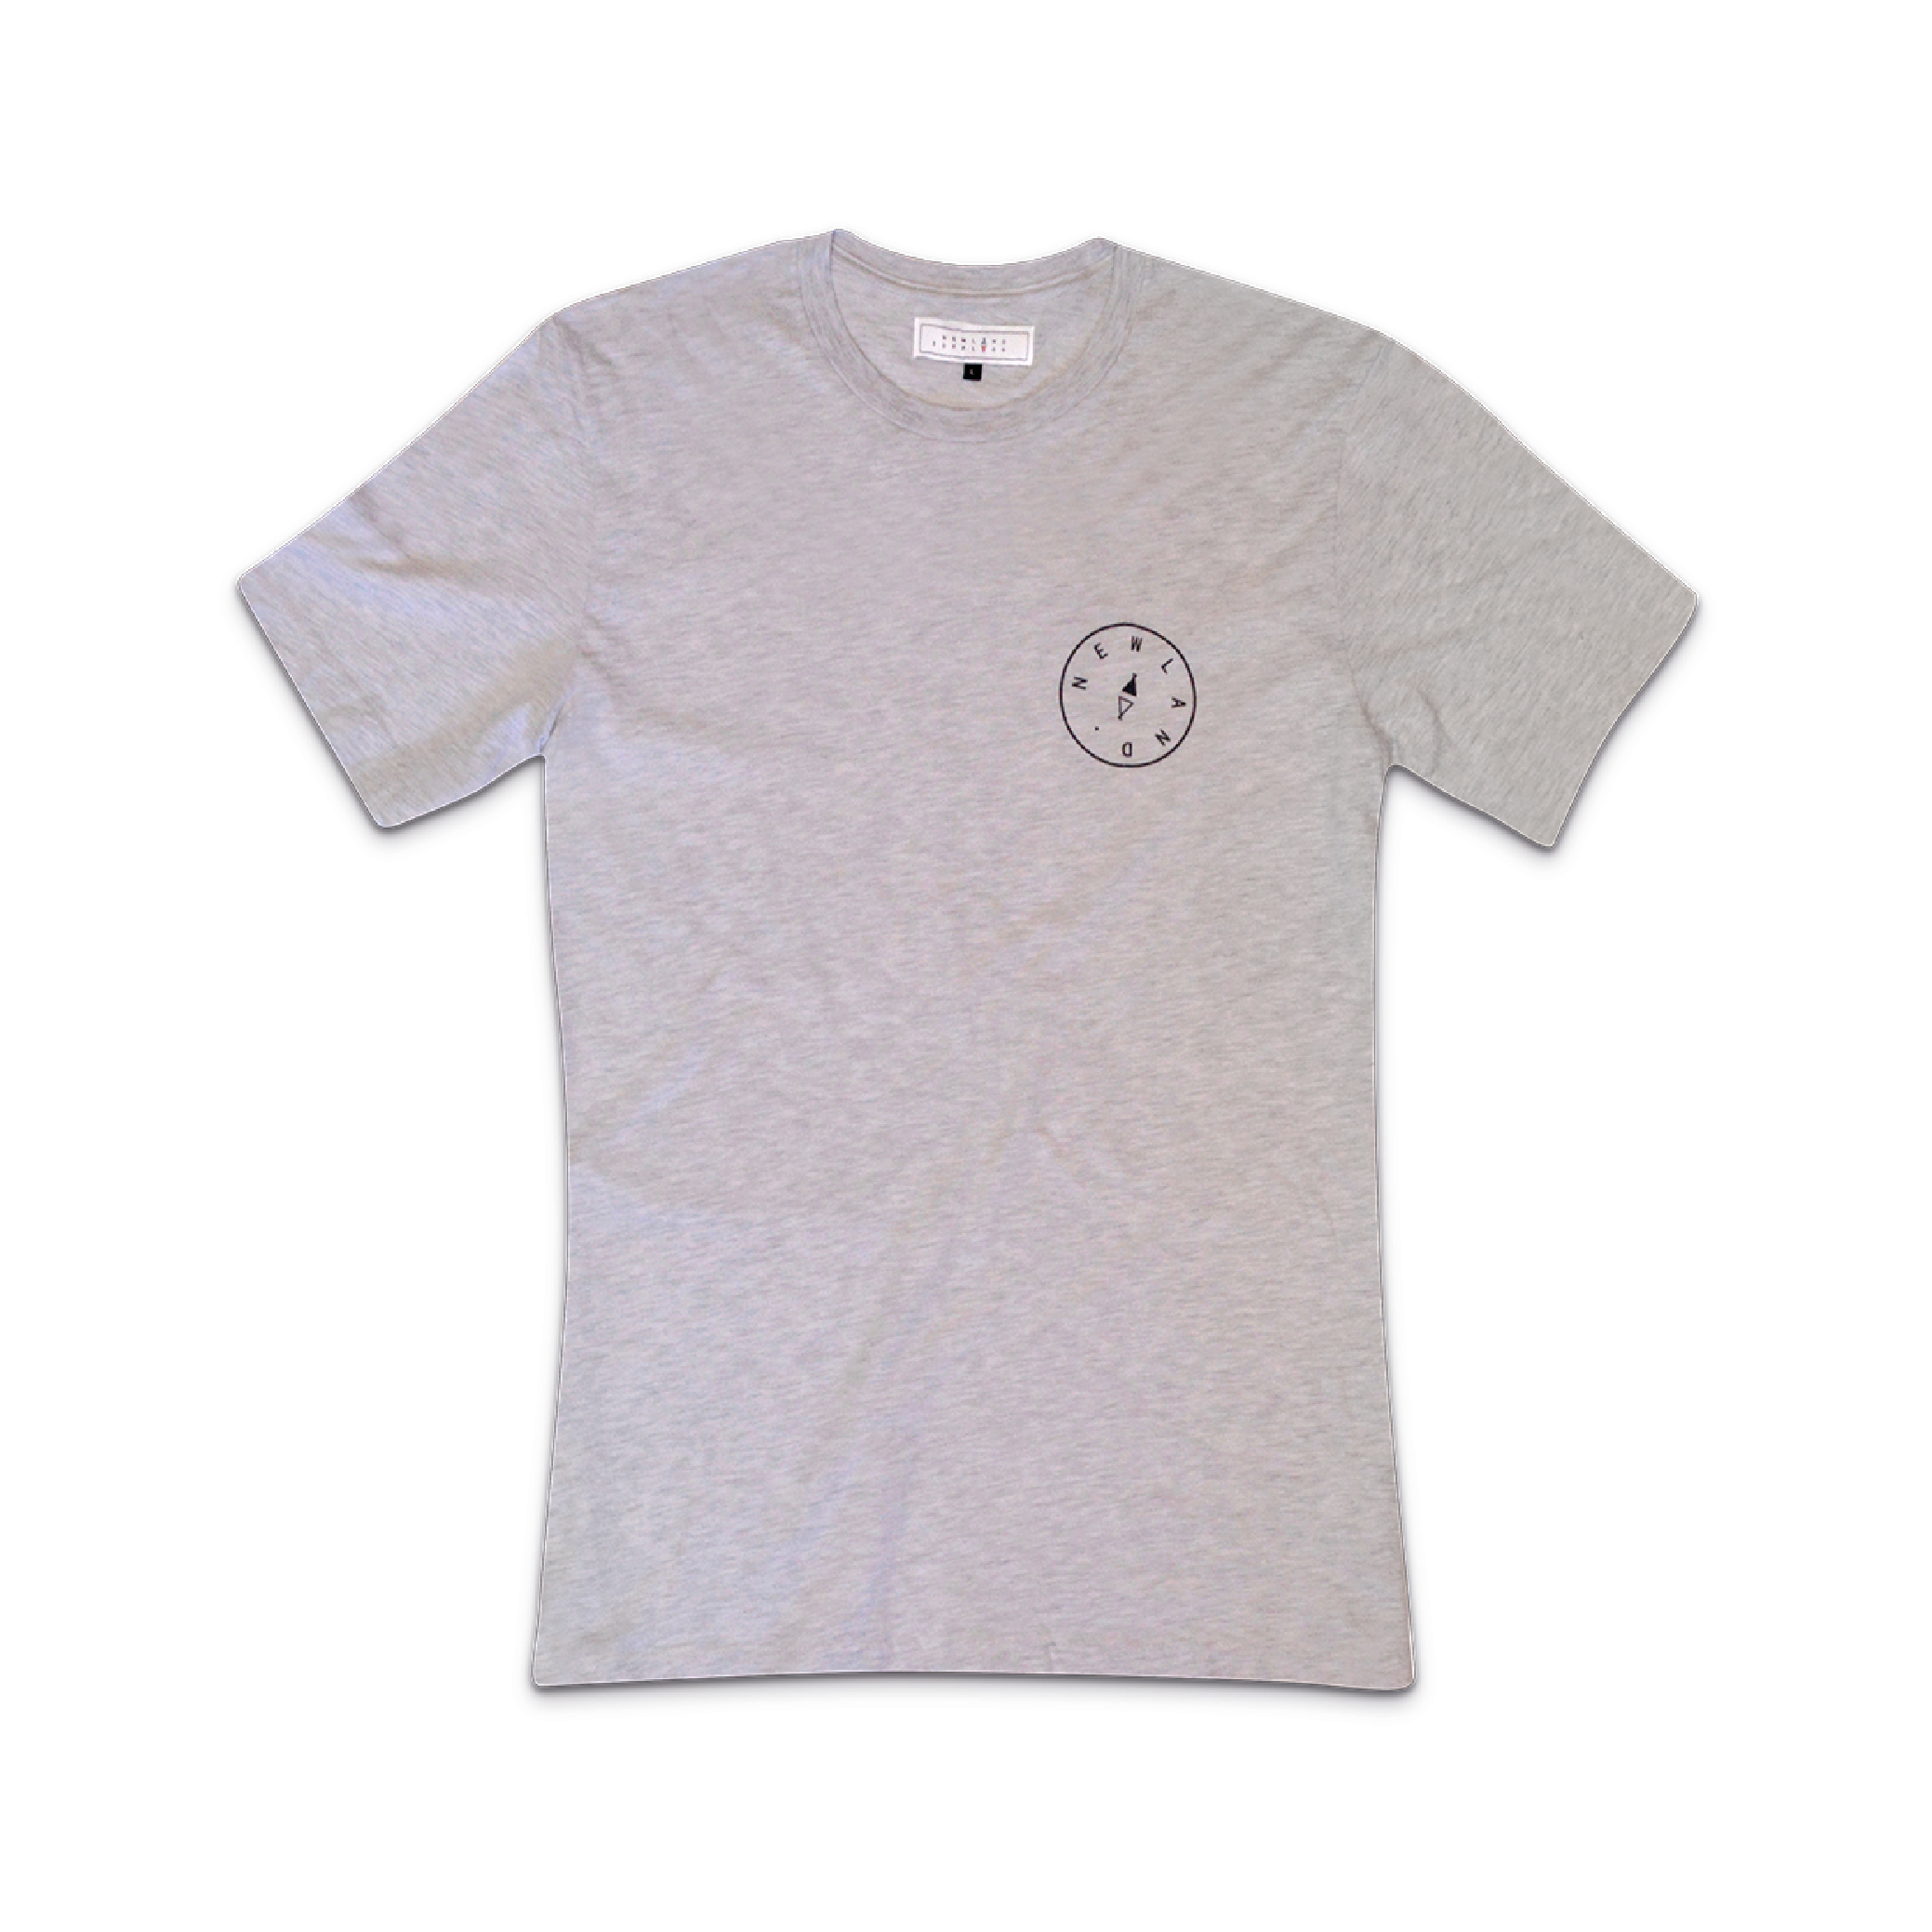 PEVERIL tee in ash    By  Newland Supply Co.     A ring-spun cotton classic with Newland print on the front & our compass detailing on the back.    SHOP NOW          £24